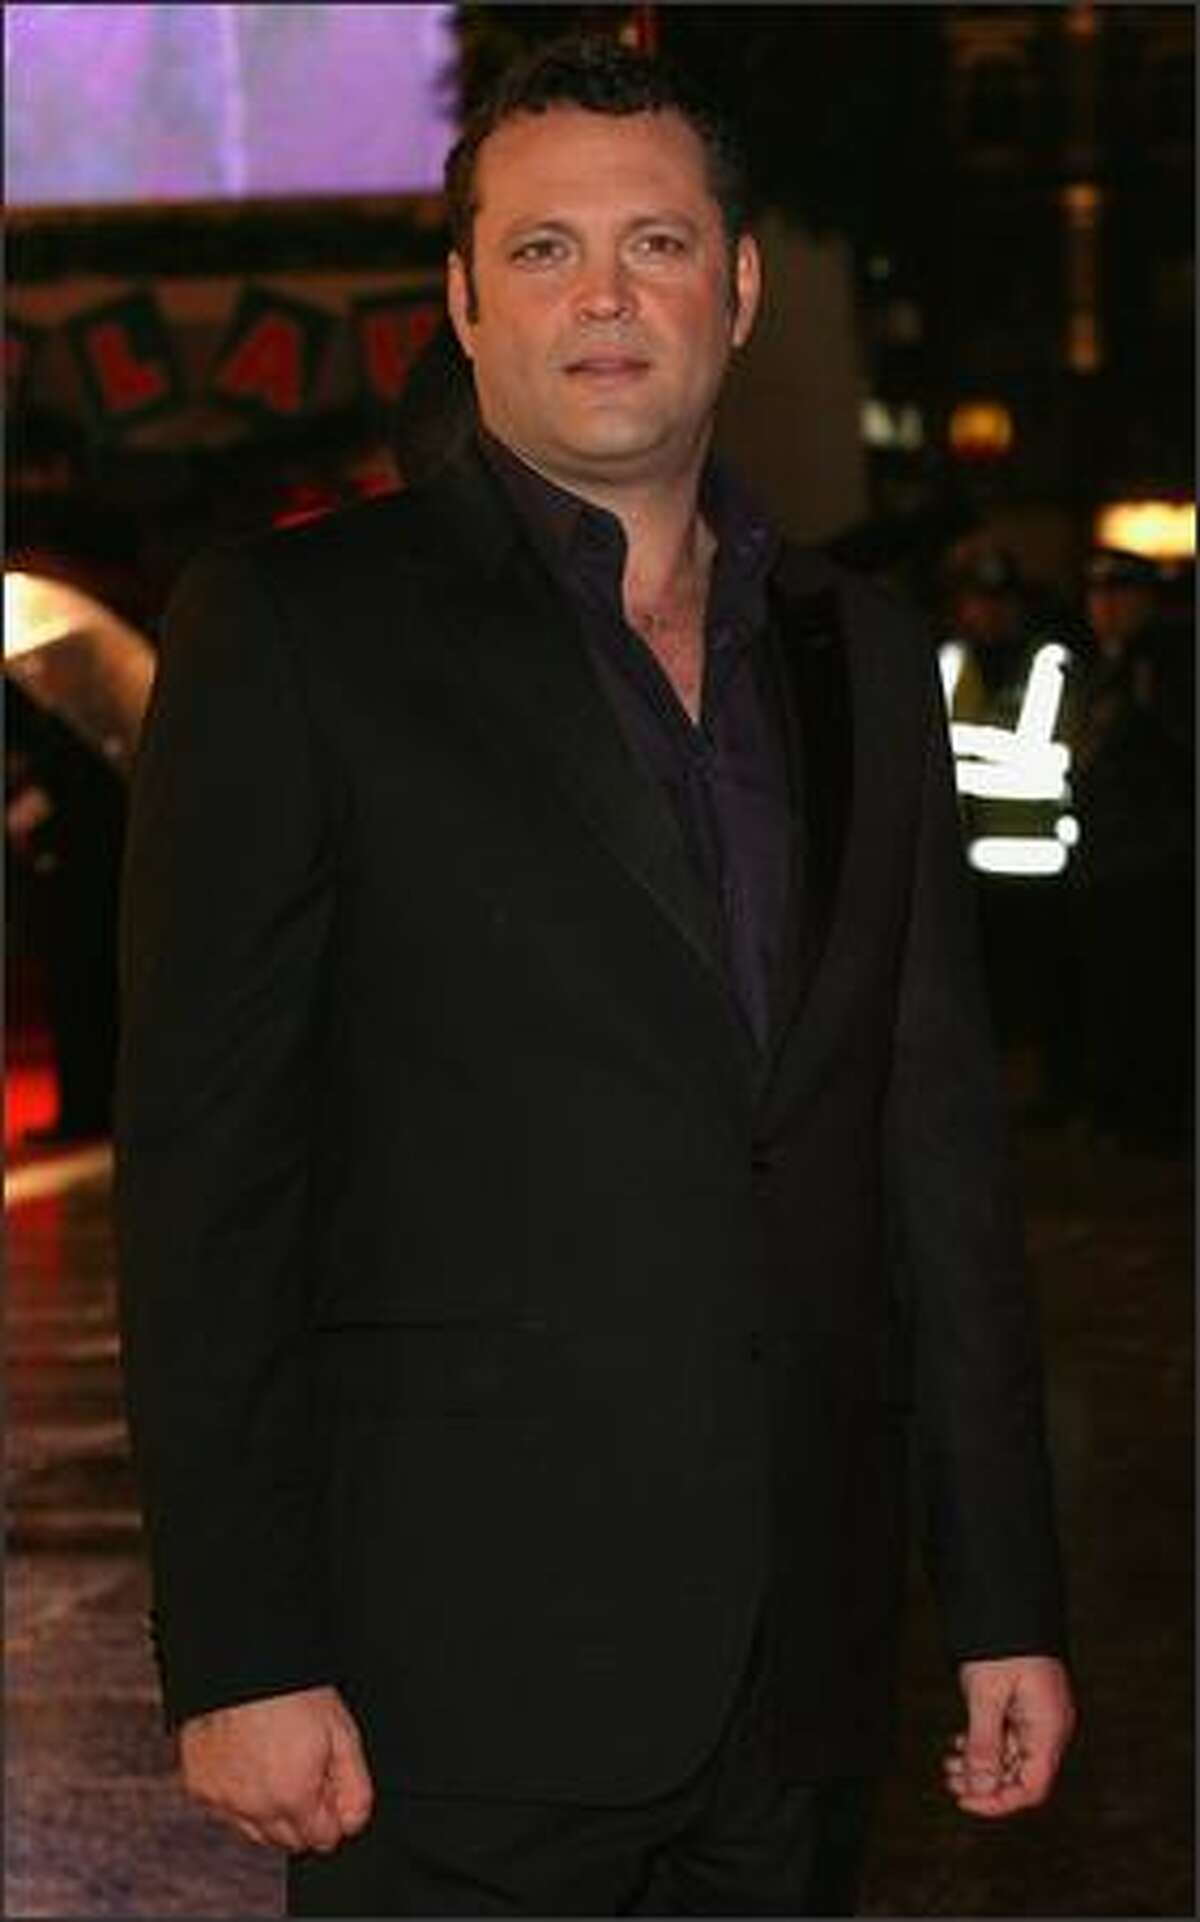 Vince Vaughn arrives at the European Premiere of Fred Claus at the Empire Leicester Square on Monday in London, England.